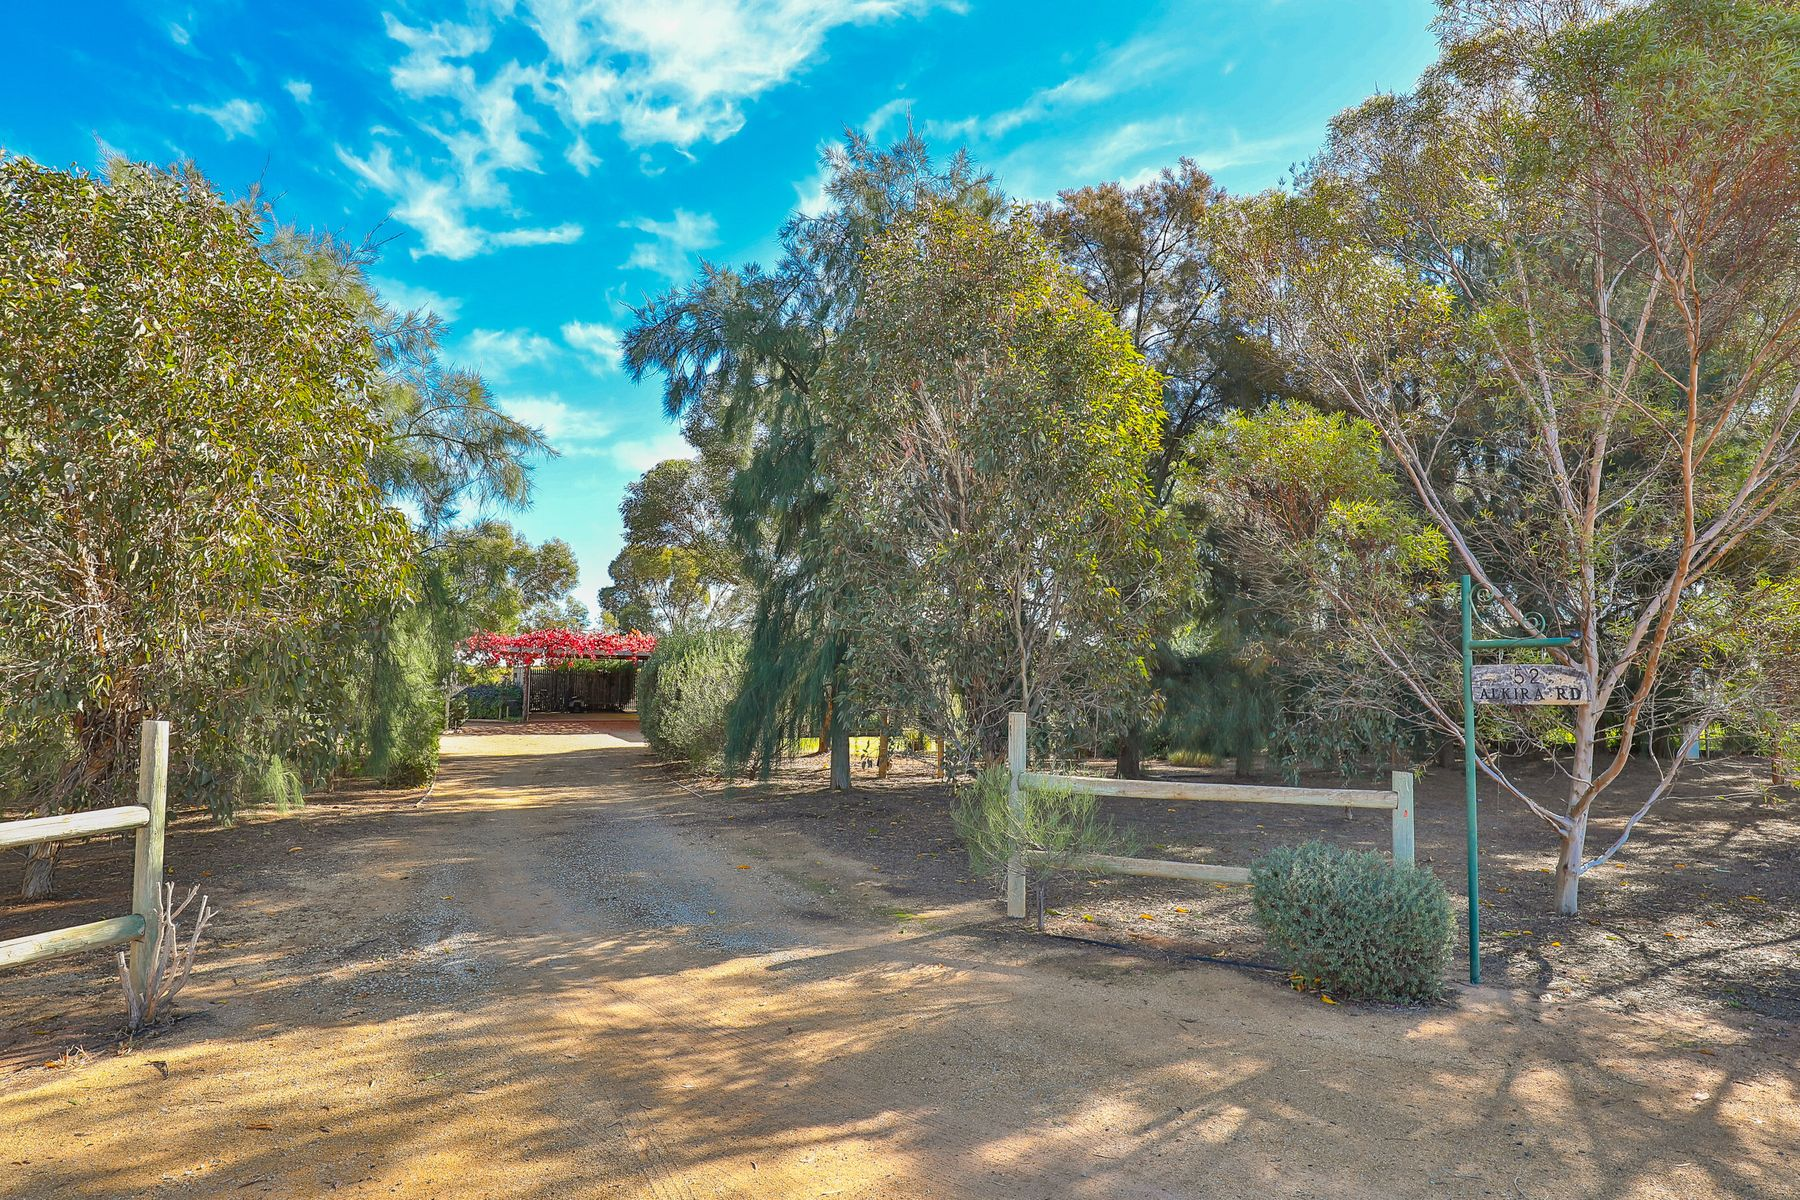 Lot 1/52 Alkira Road, Yelta, VIC 3505